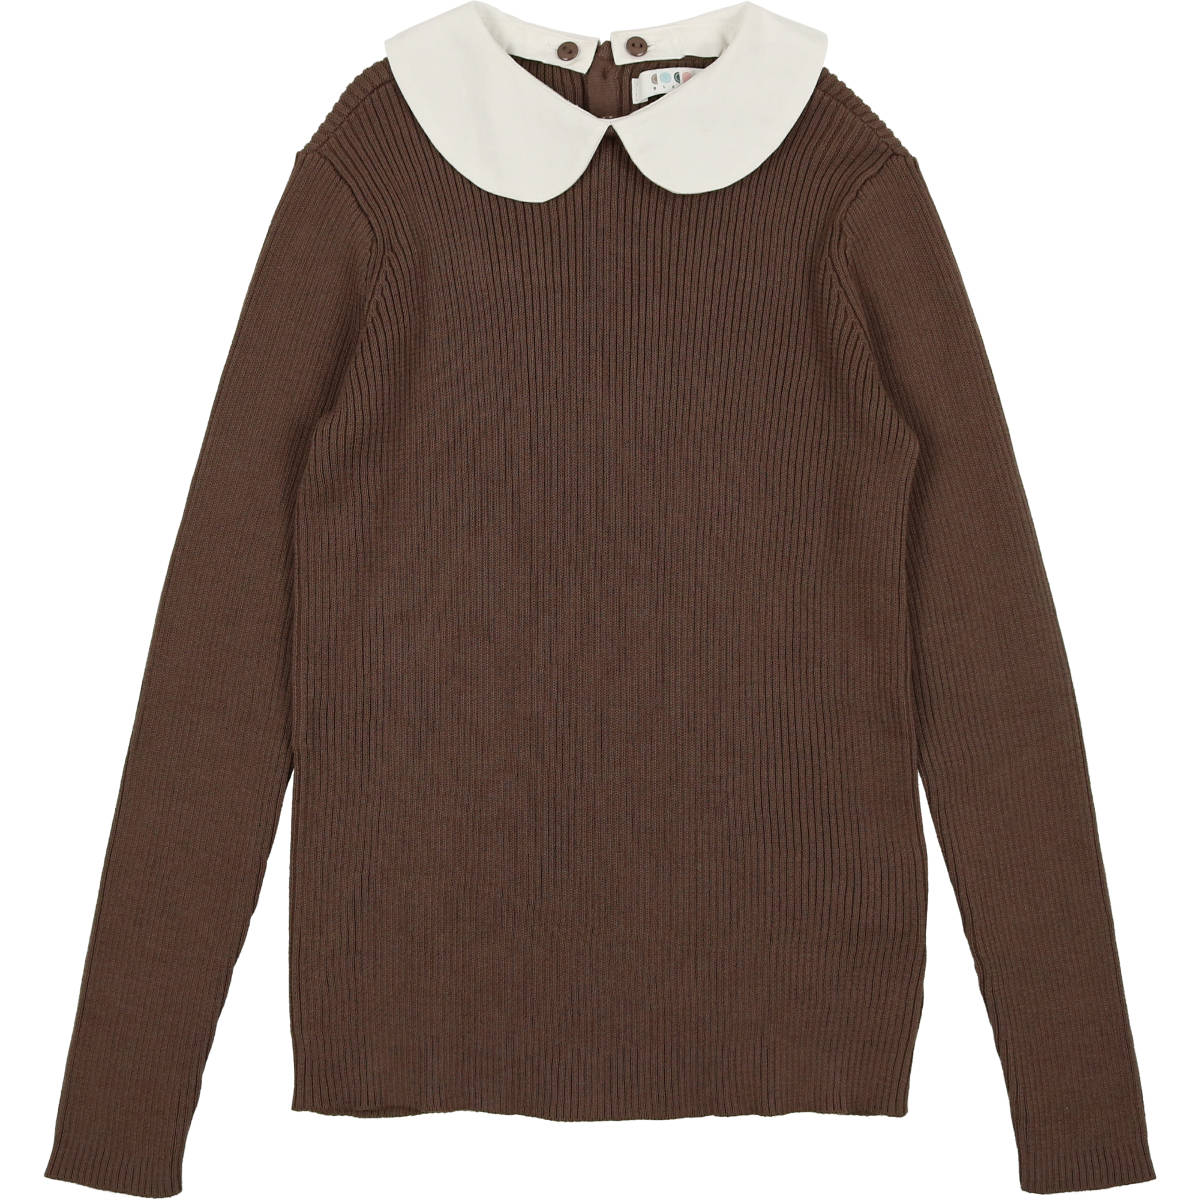 Coco Blanc Toffee Peter Pan Sweater